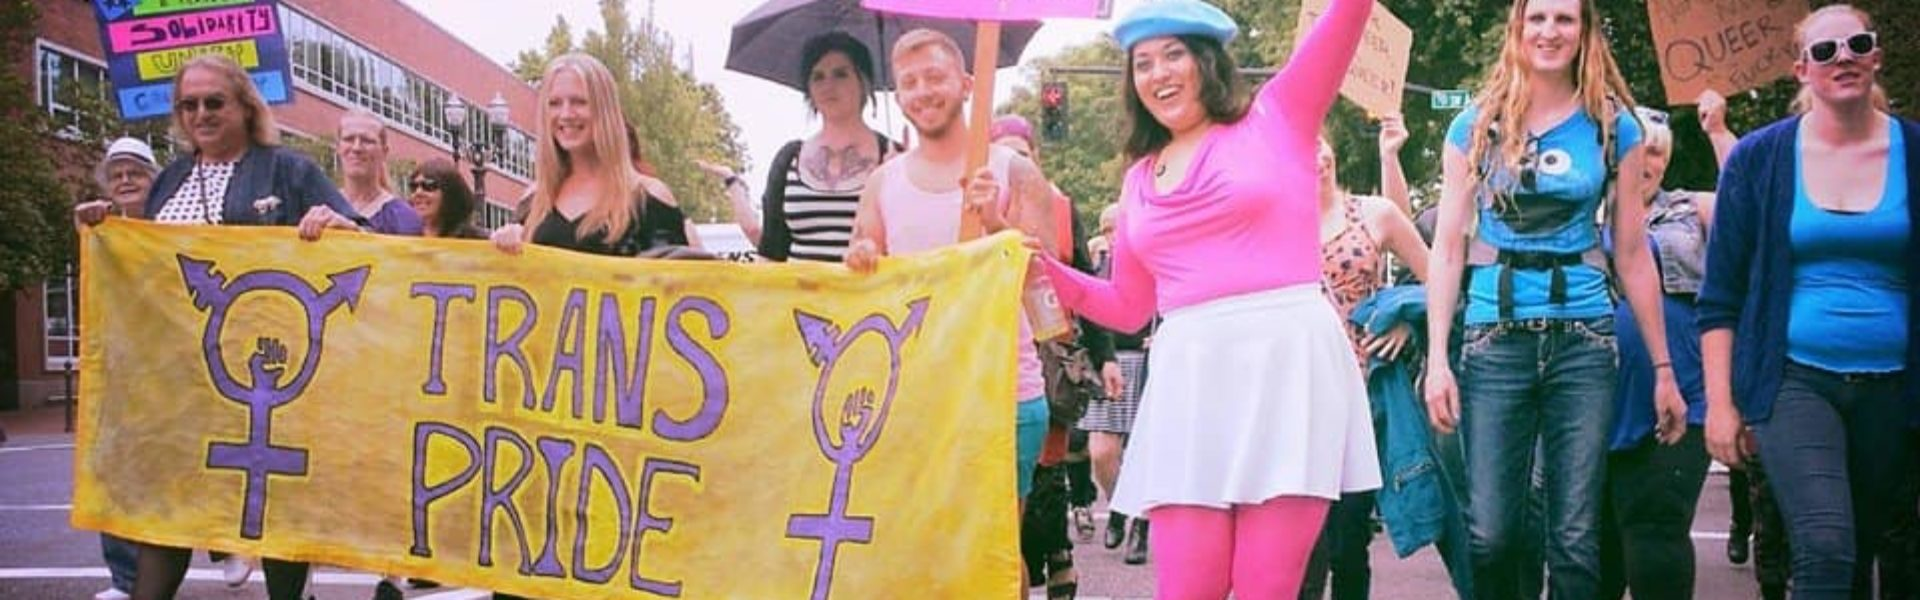 LCR Pride Foundation and Liverpool TransPride